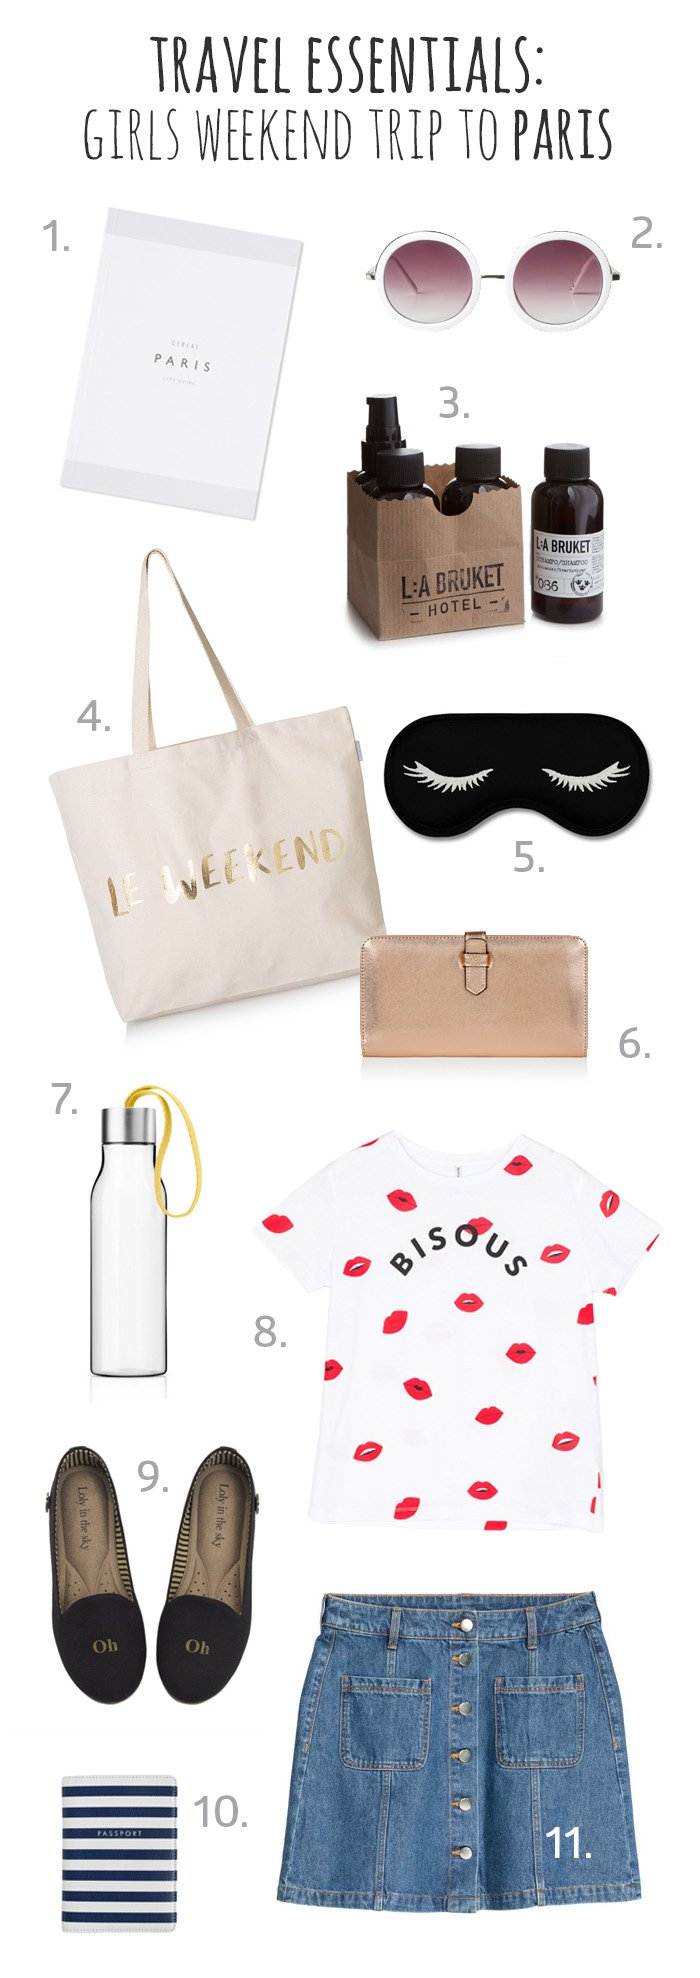 travel_essentials_girls_weekend_paris